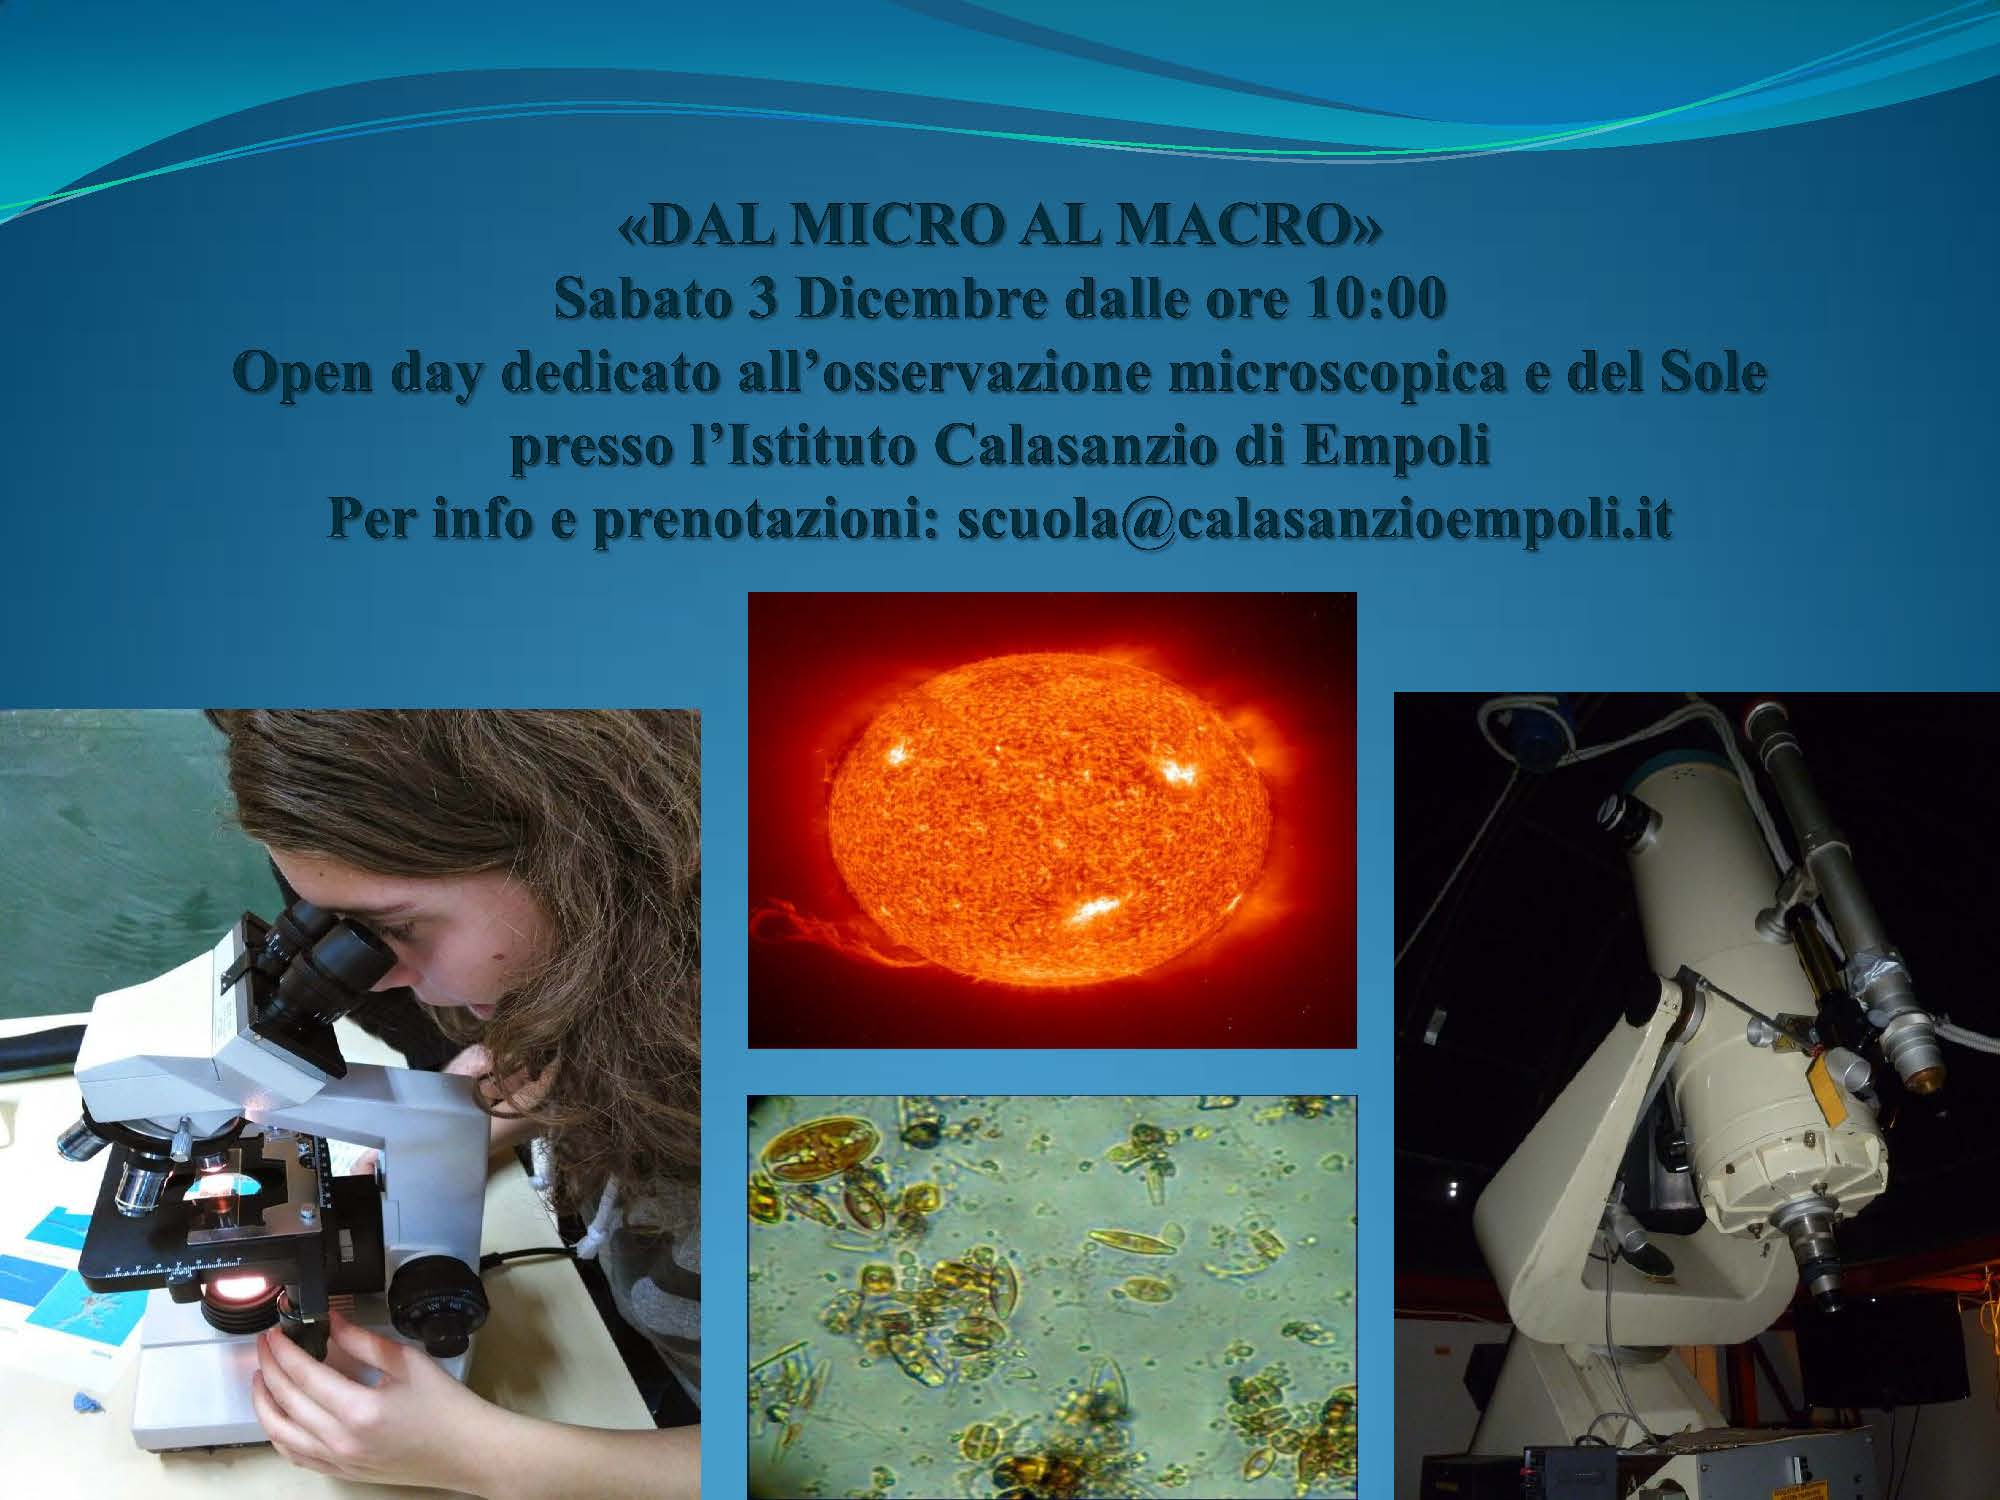 Open days Pagina 1